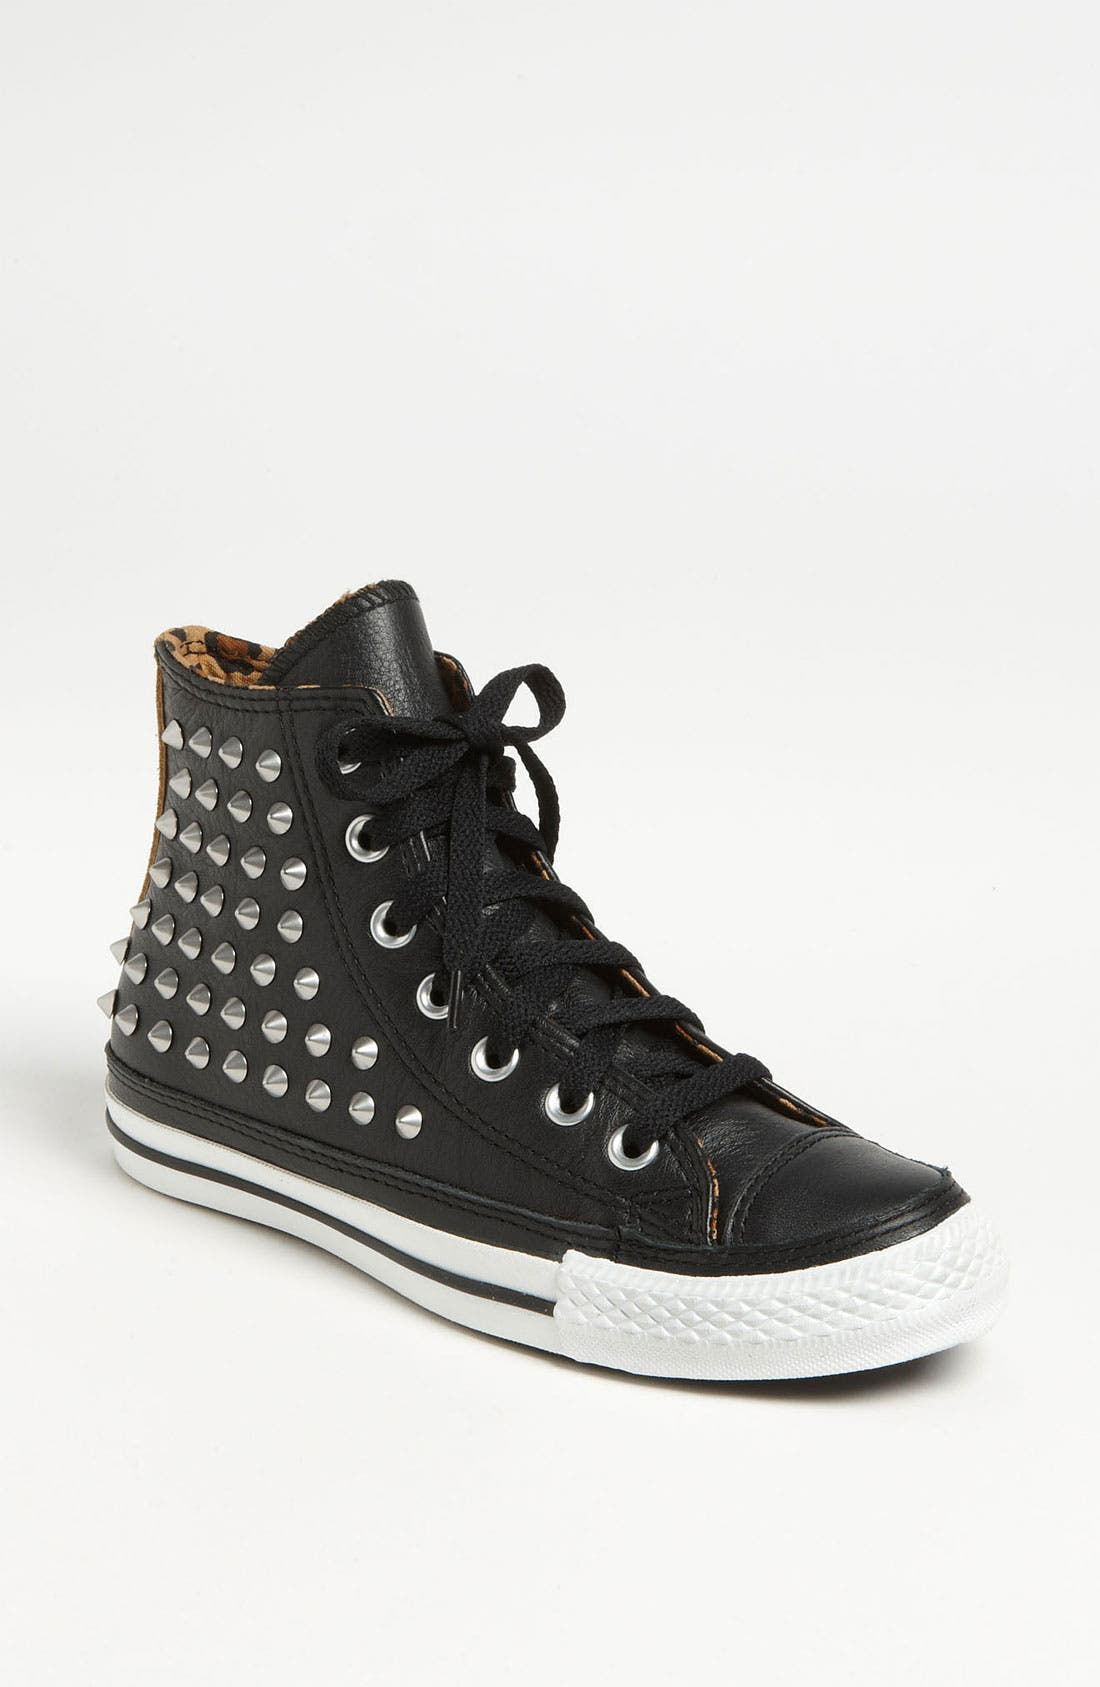 Alternate Image 1 Selected - Converse Chuck Taylor® All Star® Studded High Top Sneaker